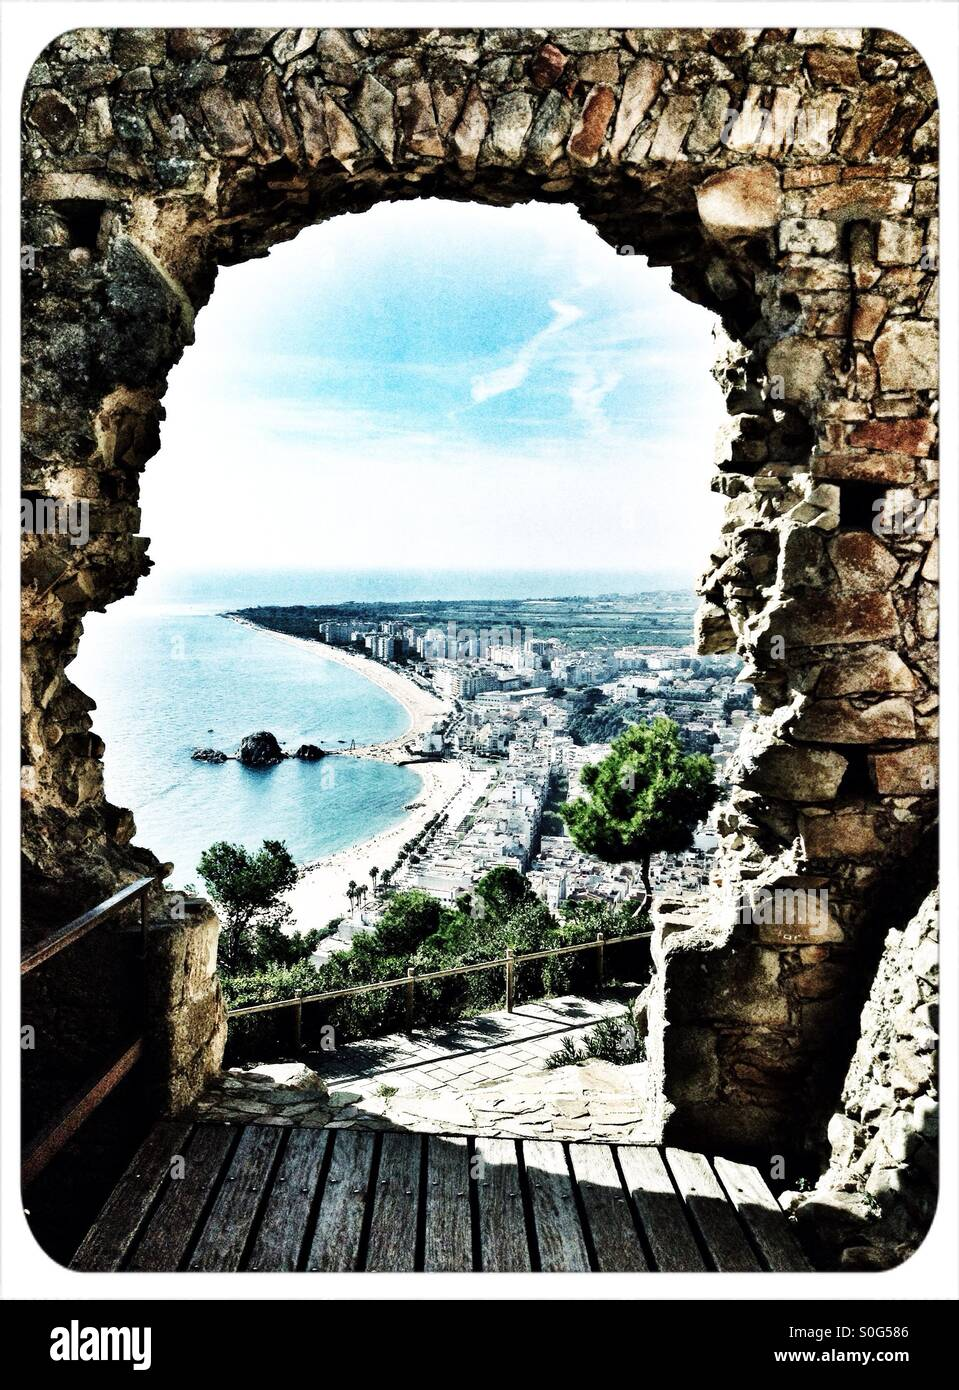 View of the beach of Blanes through a window Stock Photo